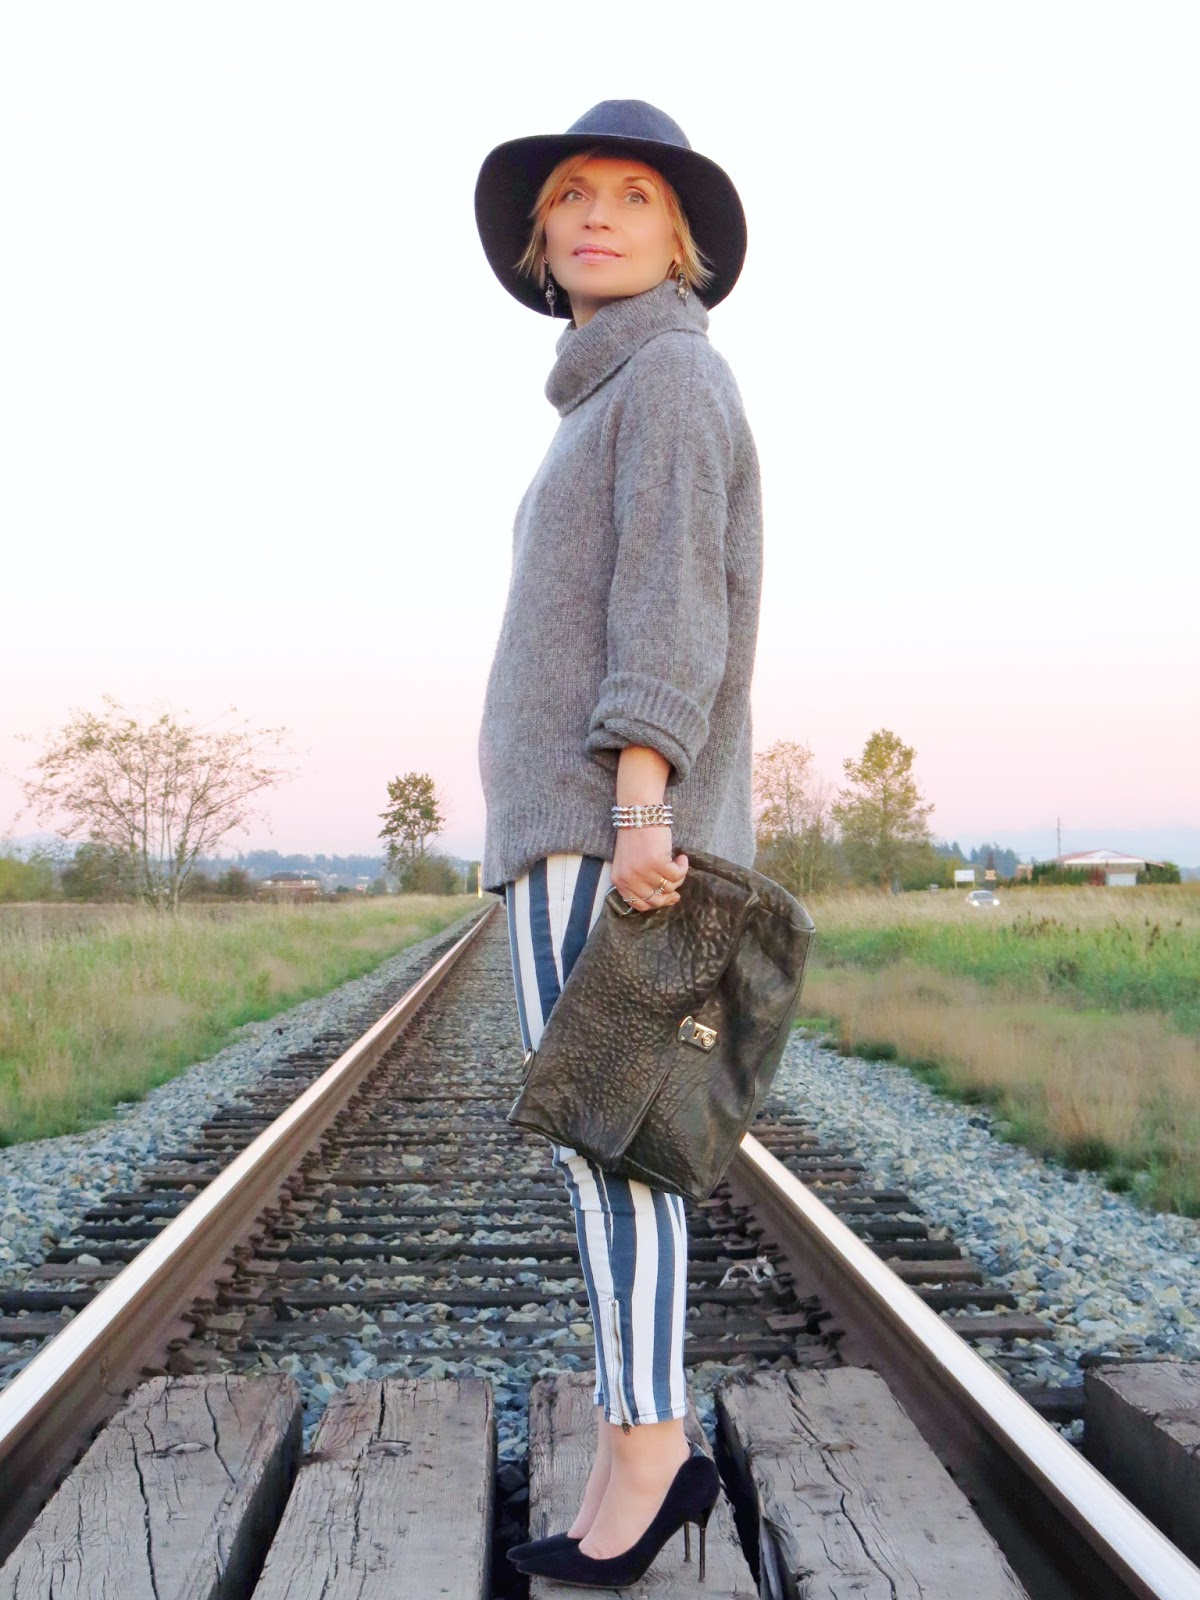 styling an oversized turtleneck sweater with striped jeans, pumps, and a floppy hat